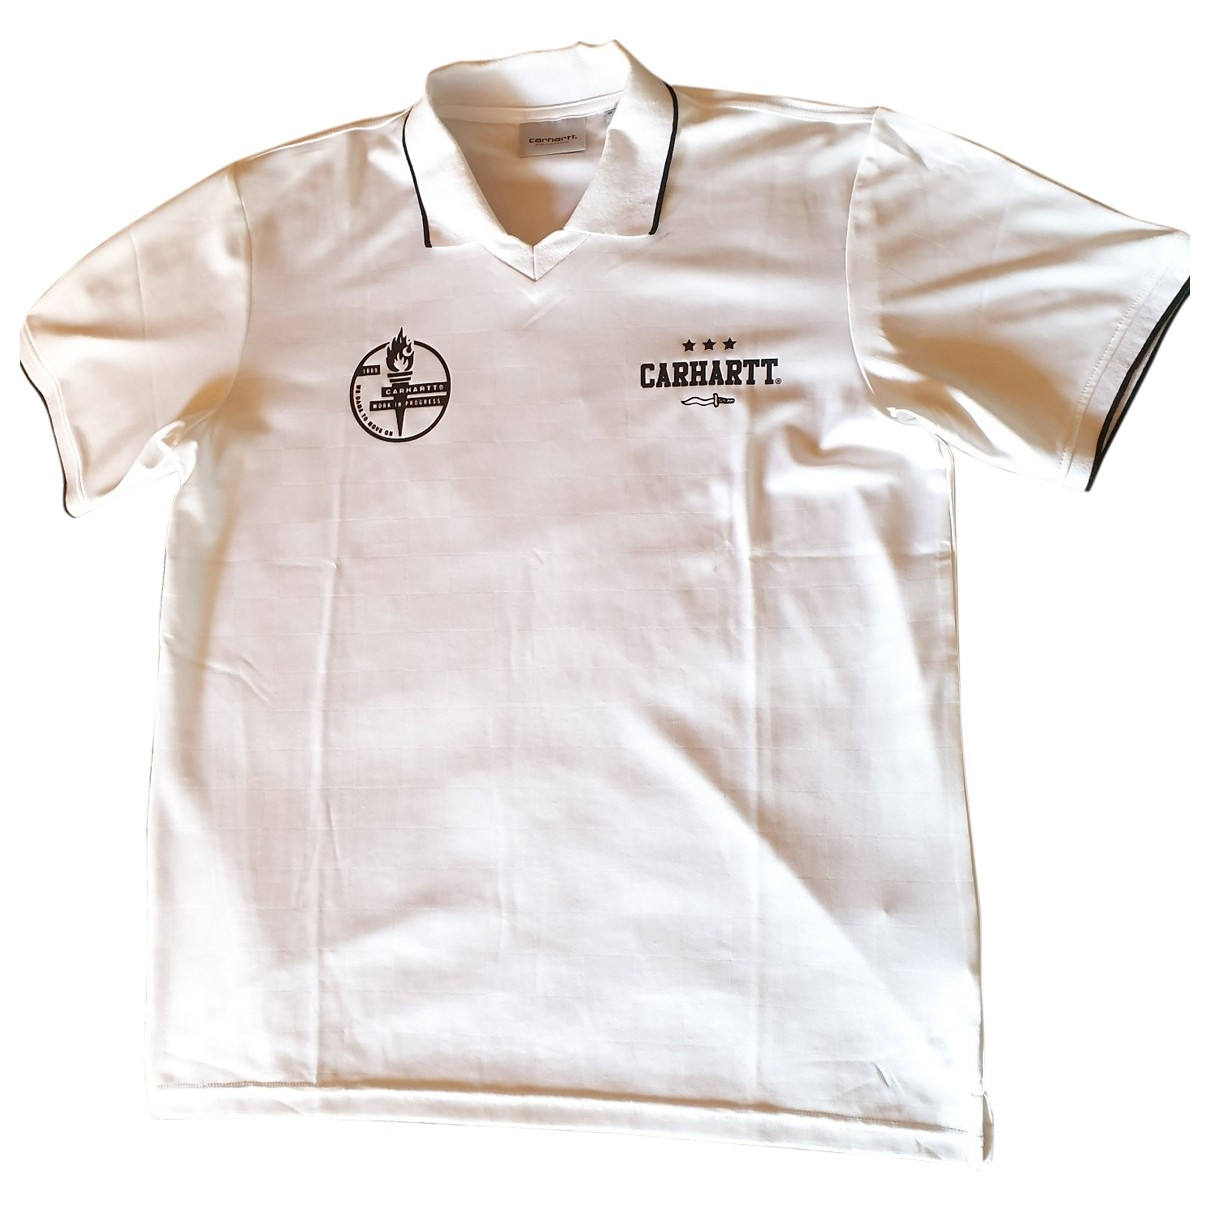 Carhartt Wip - Tee shirts   pour homme - blanc